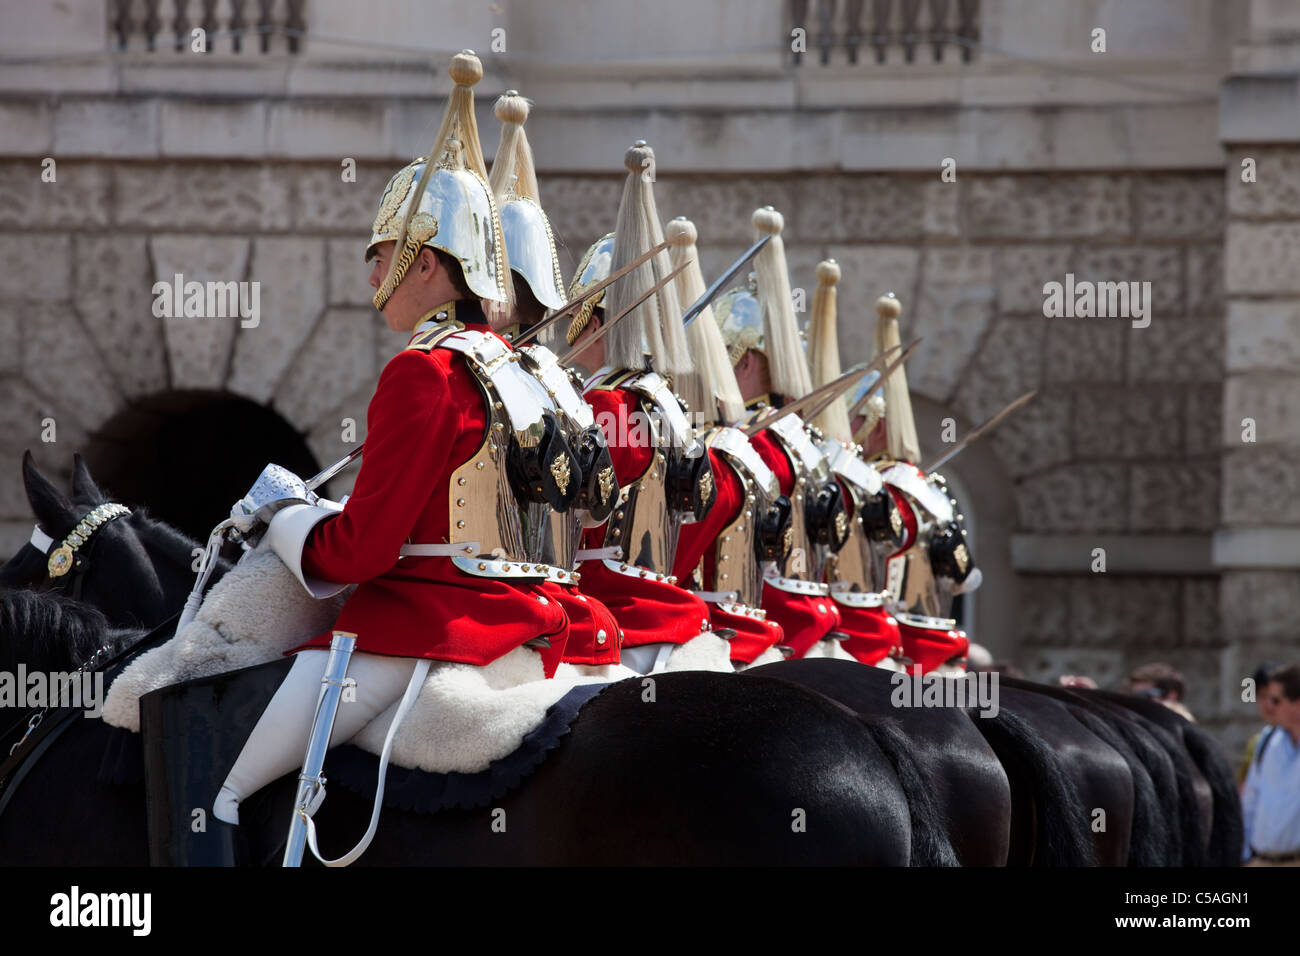 The Queen's Life Guard or Horse Guard Changing ceremony in London, UK on June 14, 2011. Stock Photo